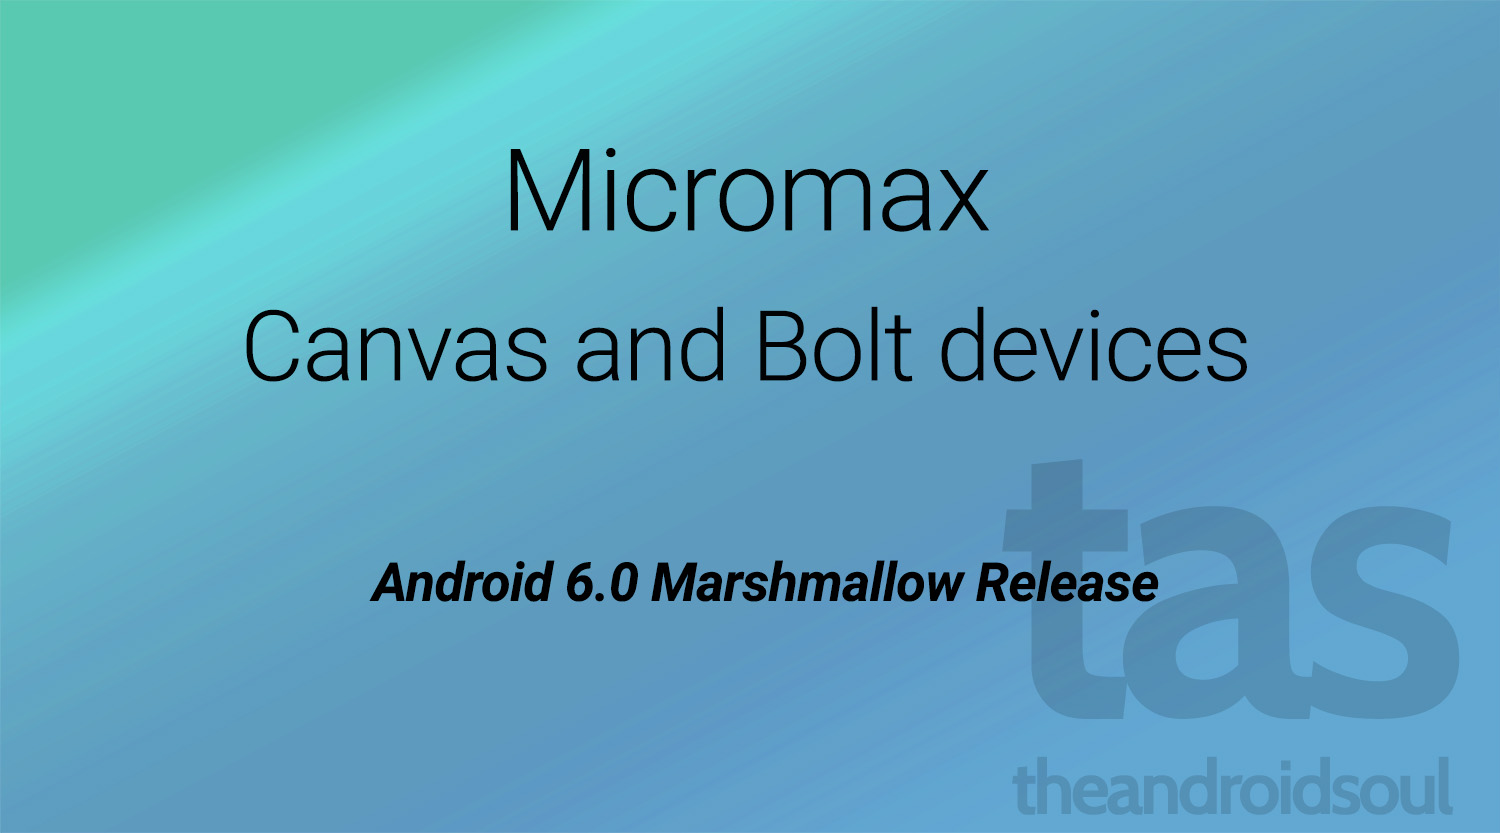 Micromax Marshmallow Update plans [Android 6.0] - The Android Soul